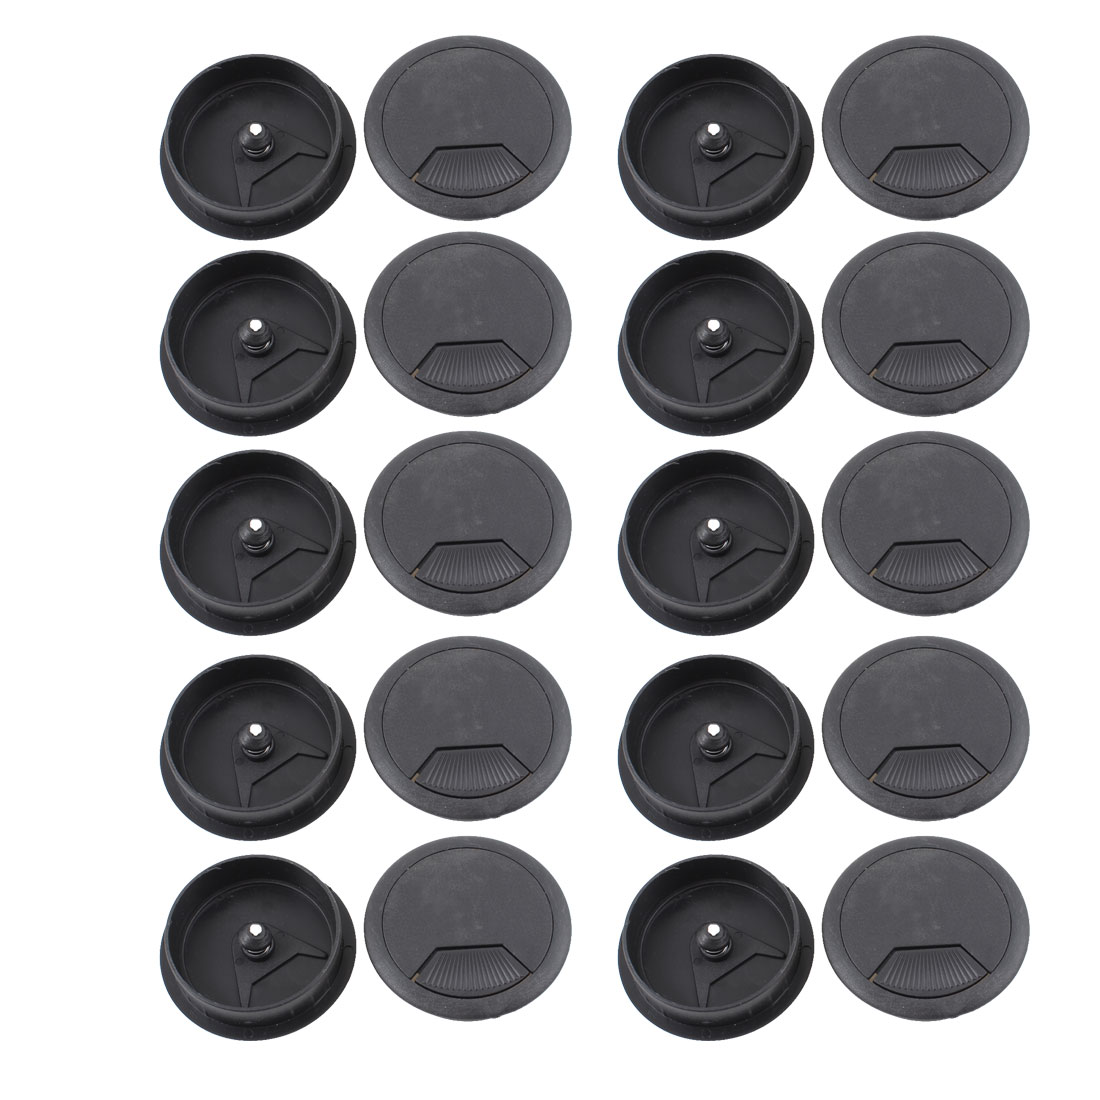 Computer Desk Plastic Grommet Wire Hole Cap Cable Cover 60mm Black 20pcs